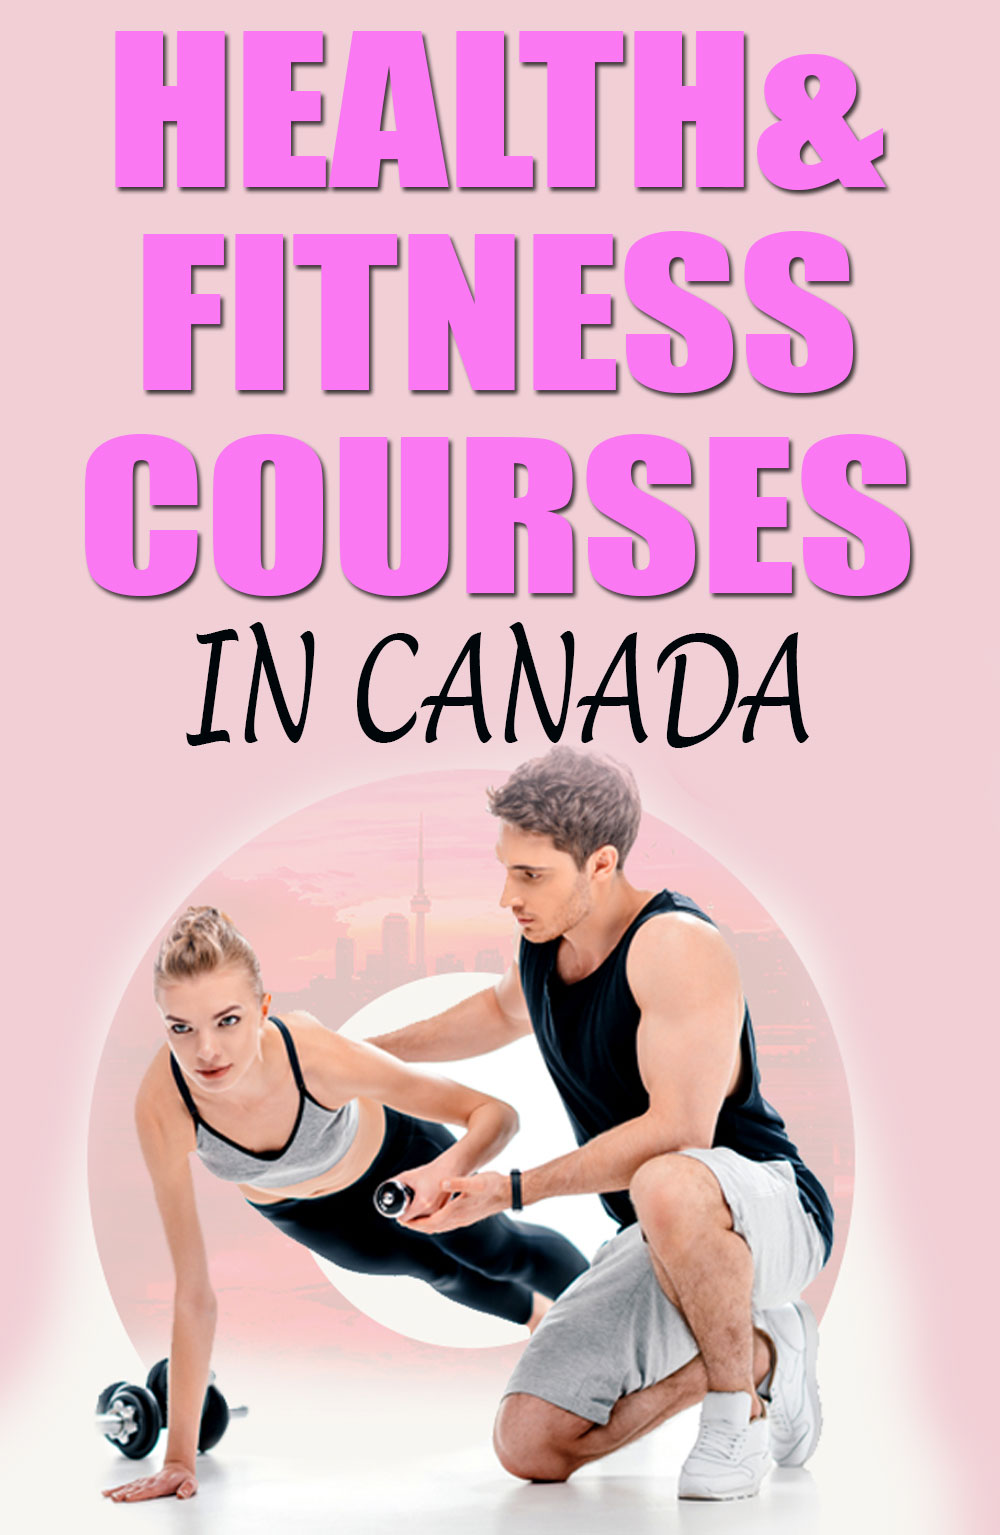 Health And Fitness Courses In Canada